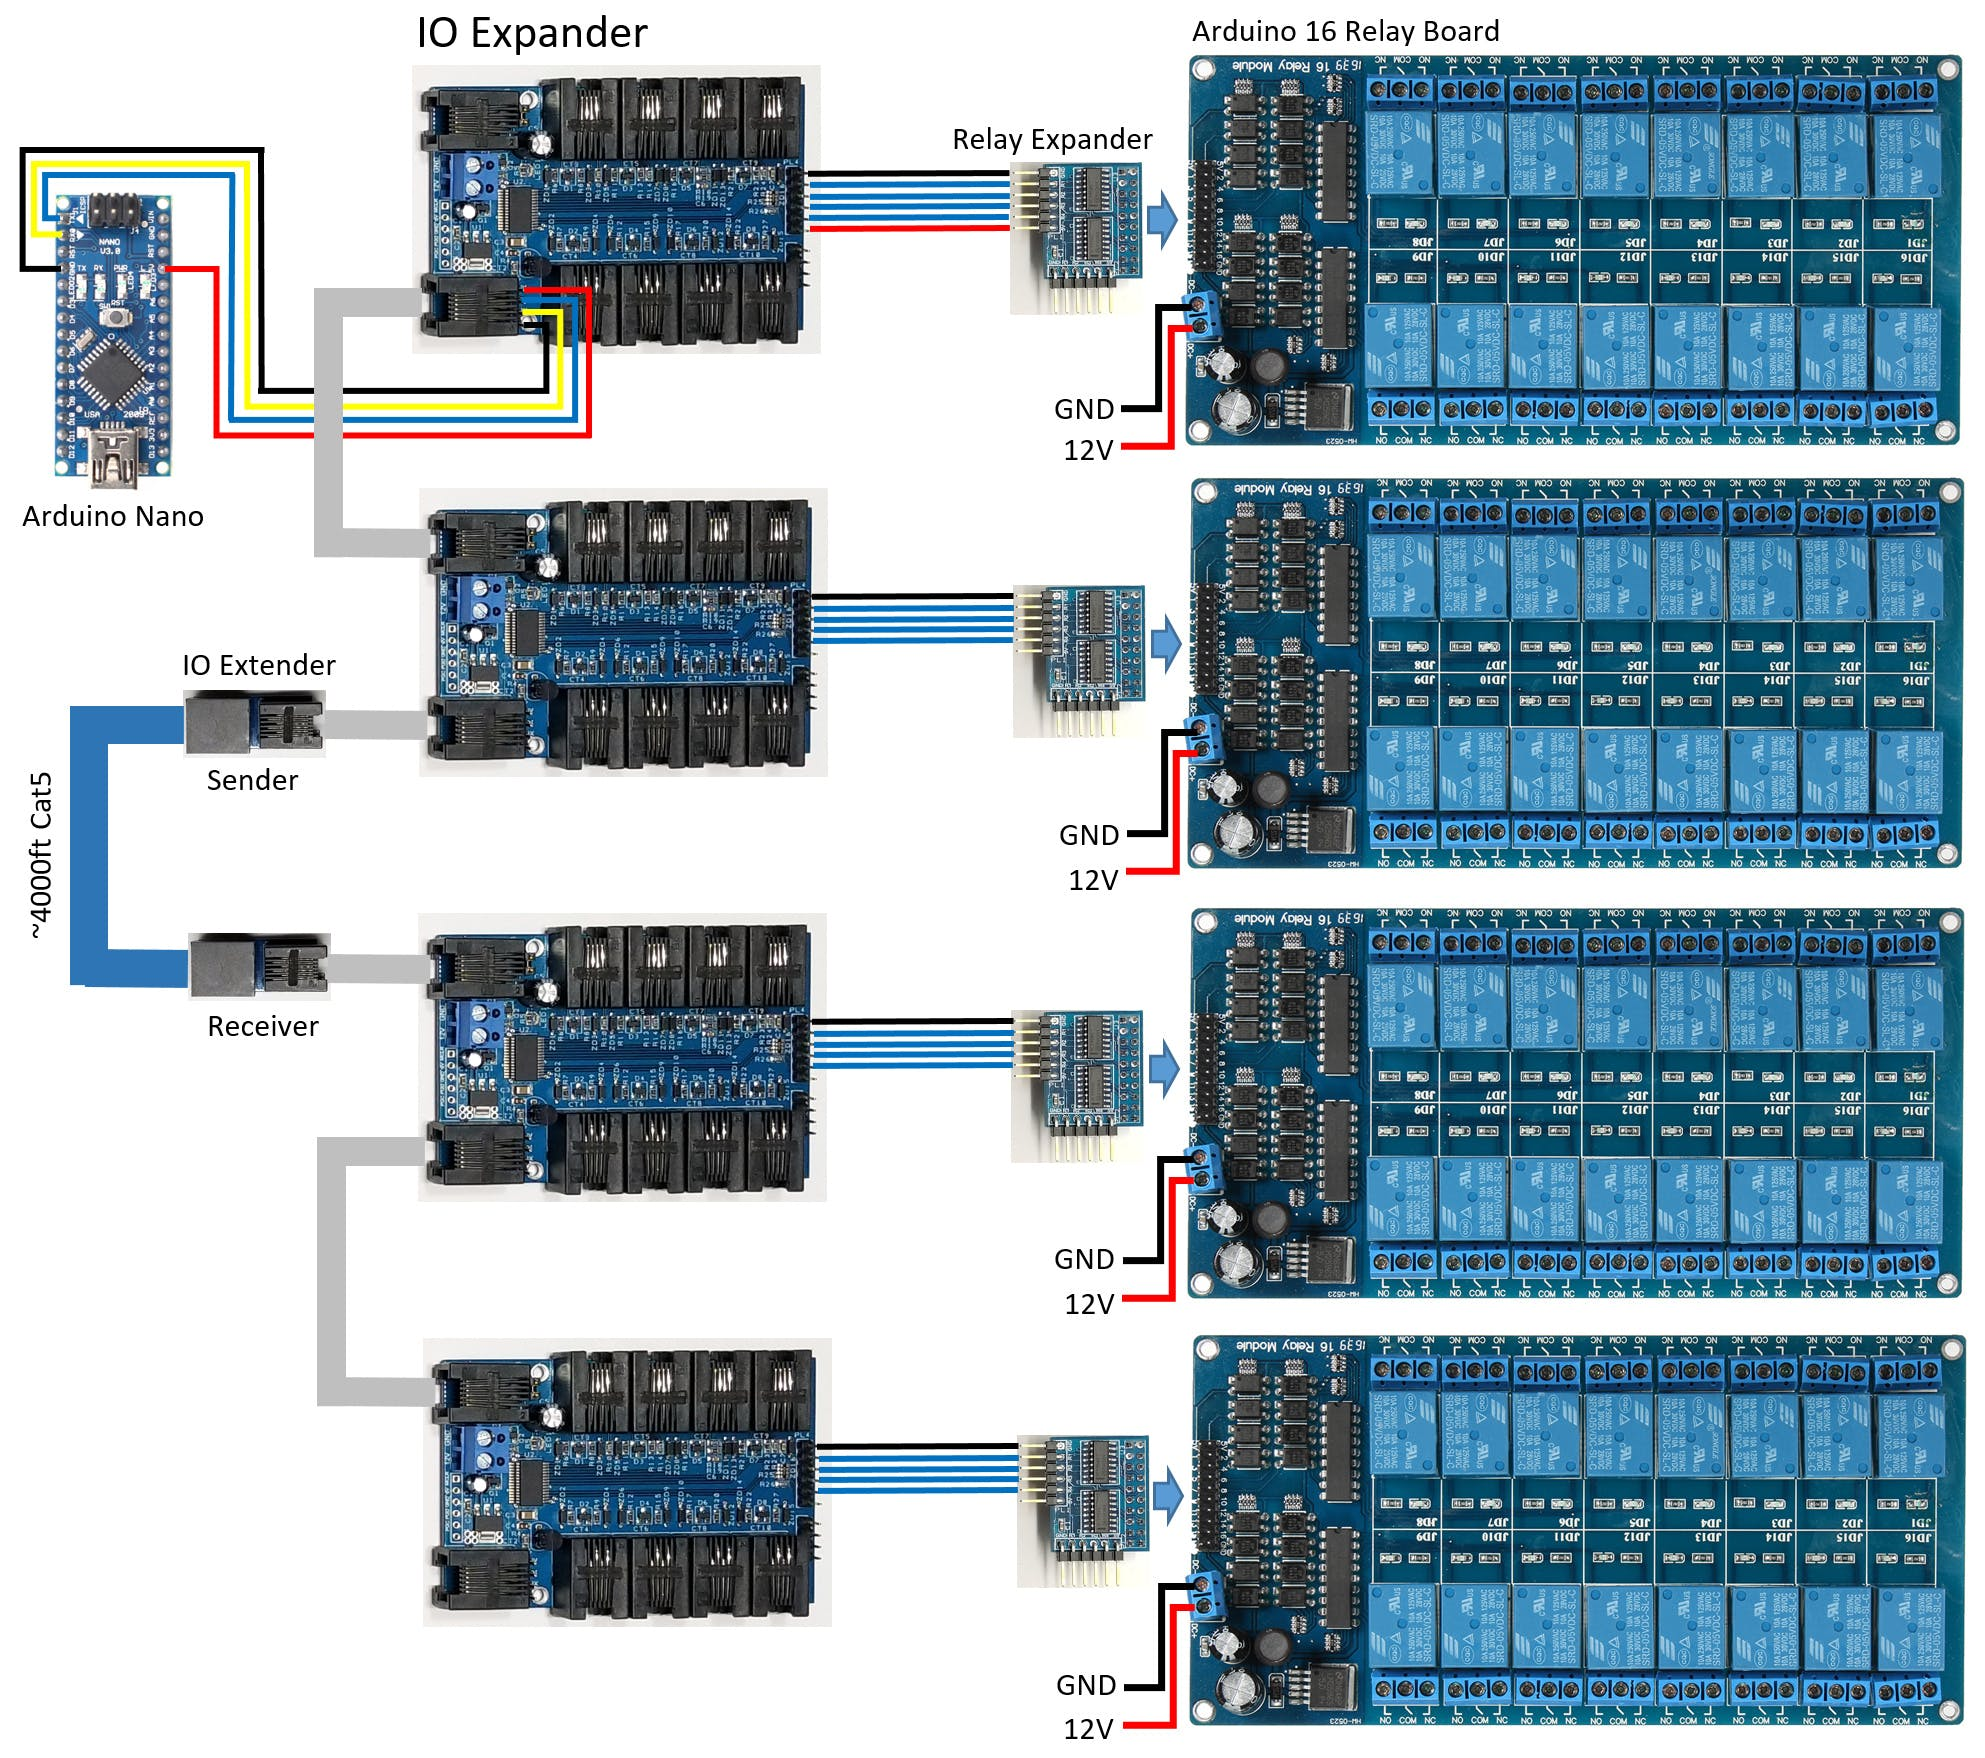 Wiring Relays using Multiple Expanders